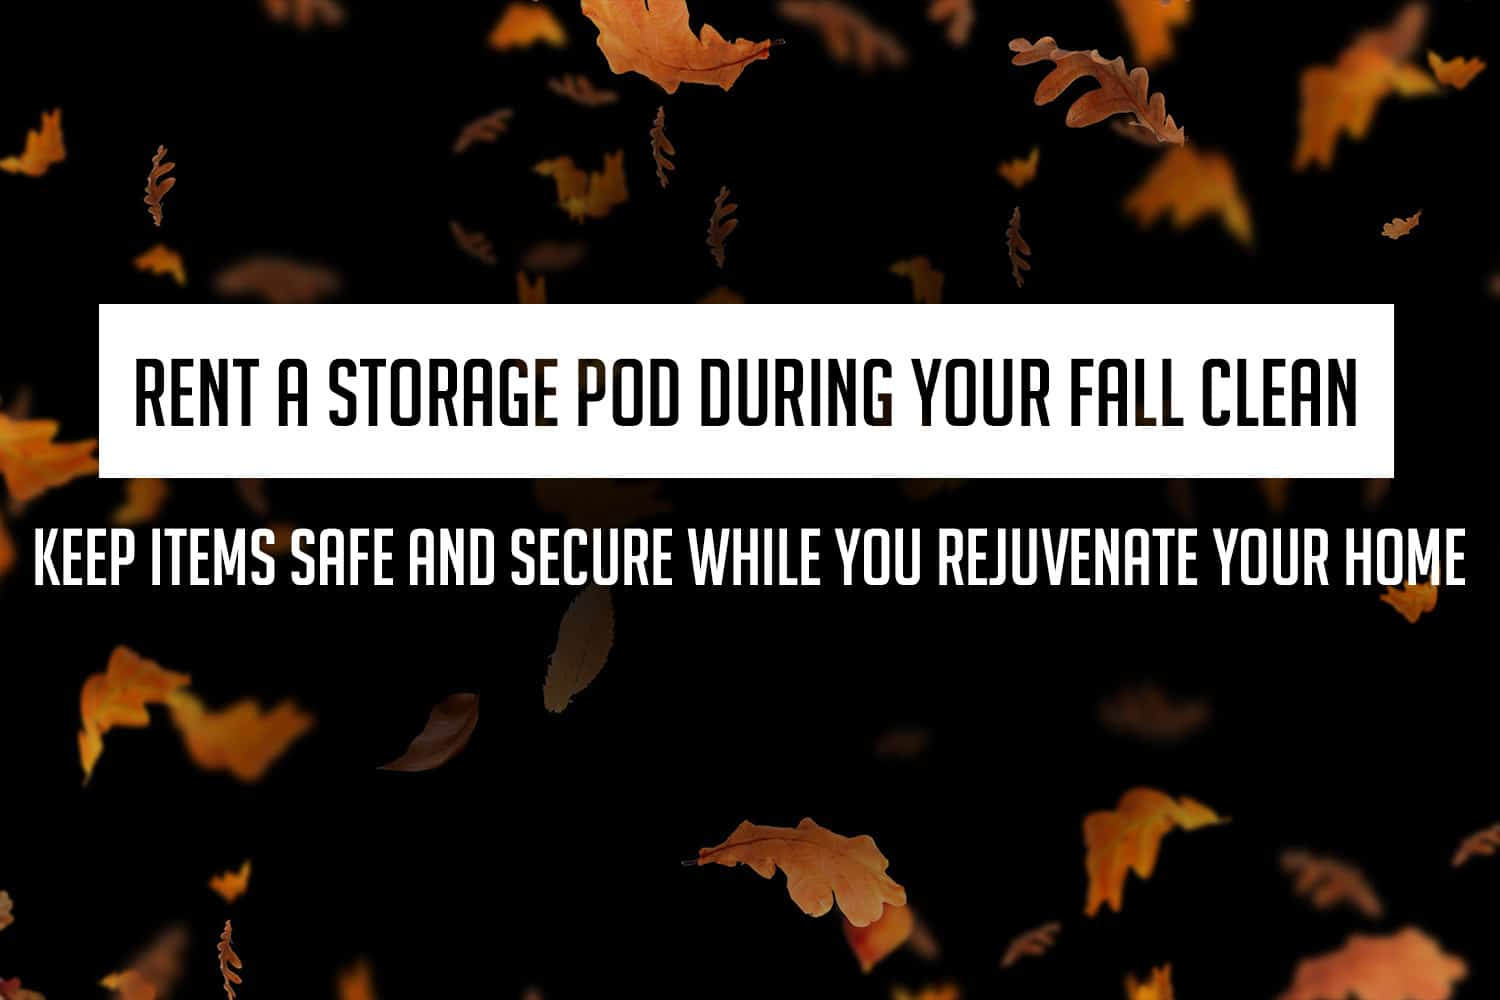 Rent A Storage Pod During Your Fall Clean